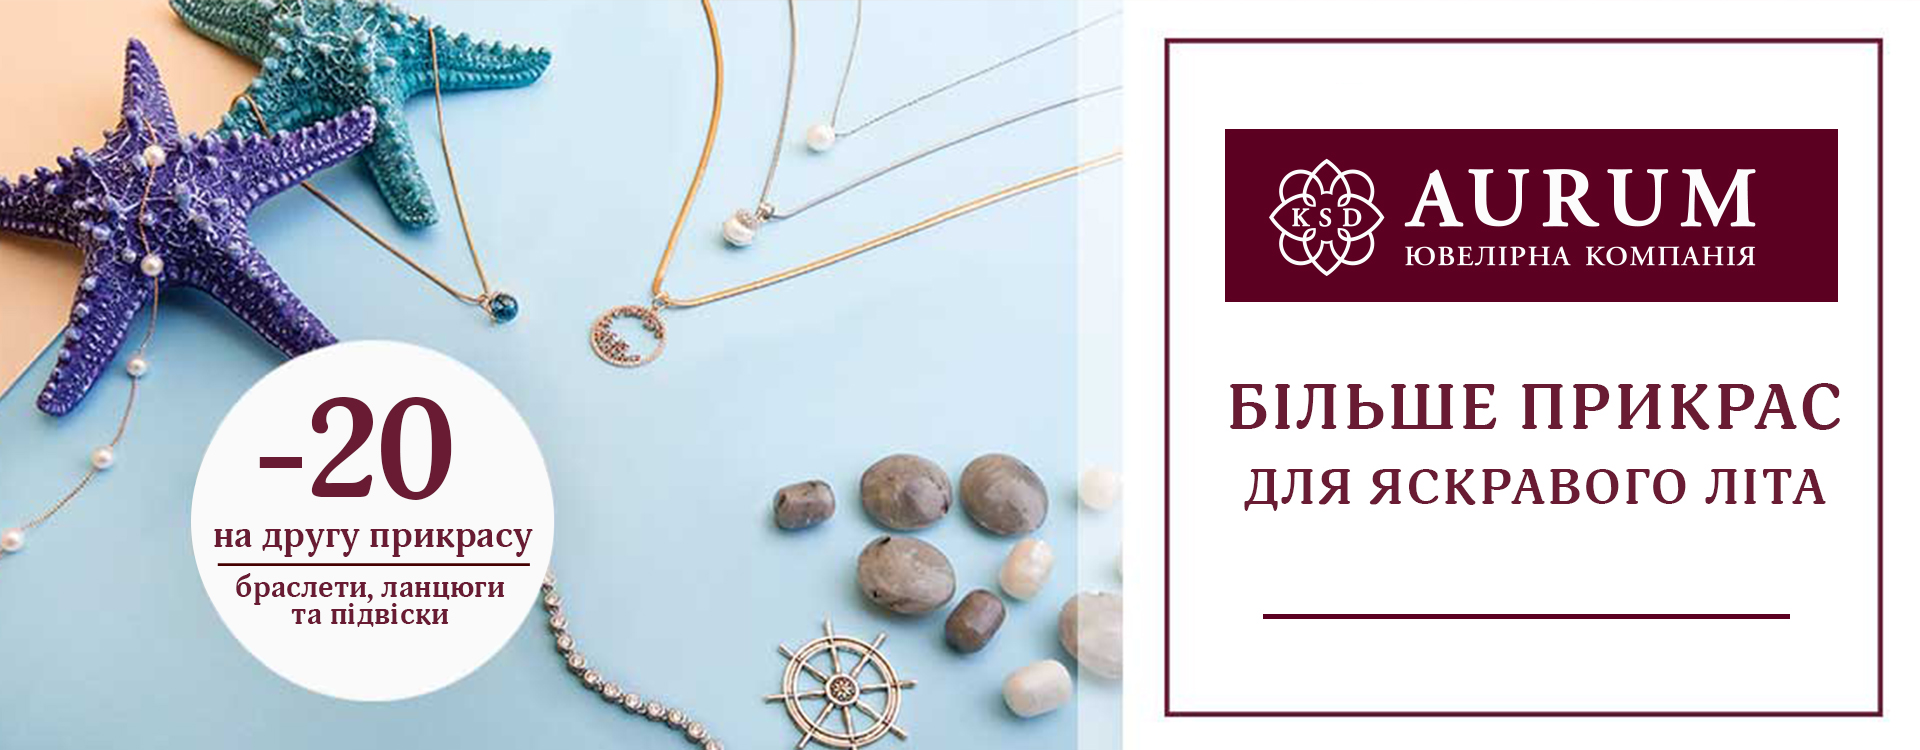 More jewelry for a bright summer in KSD AURUM stores